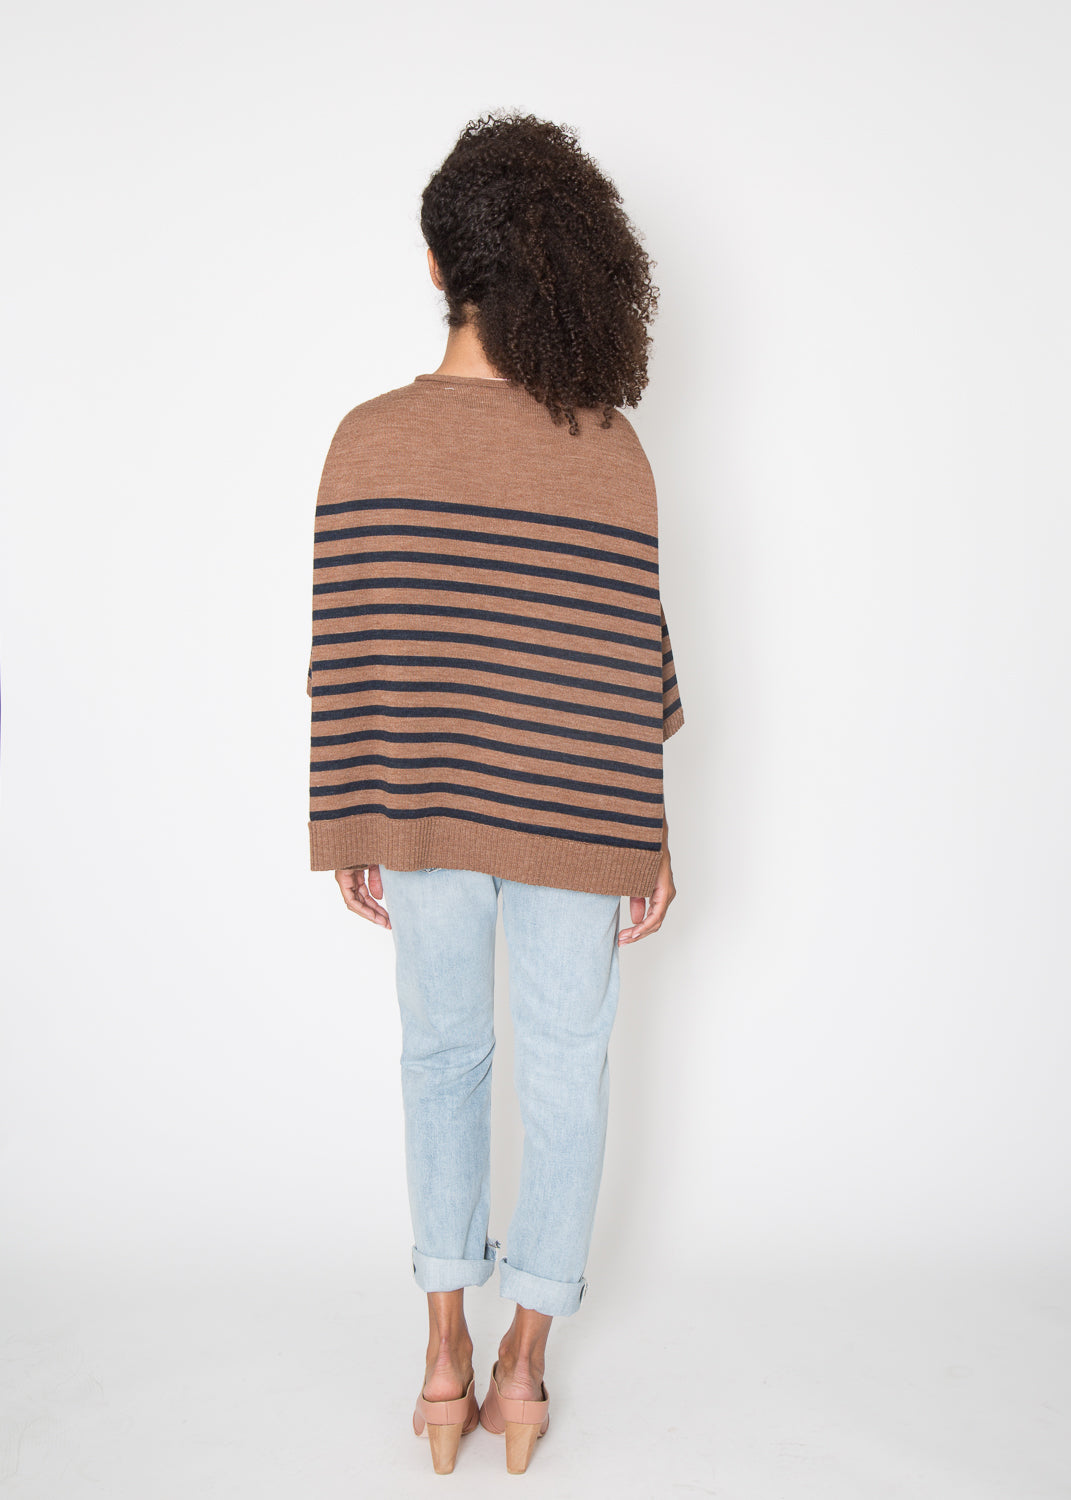 Gallego Desportes Boxy Sweater